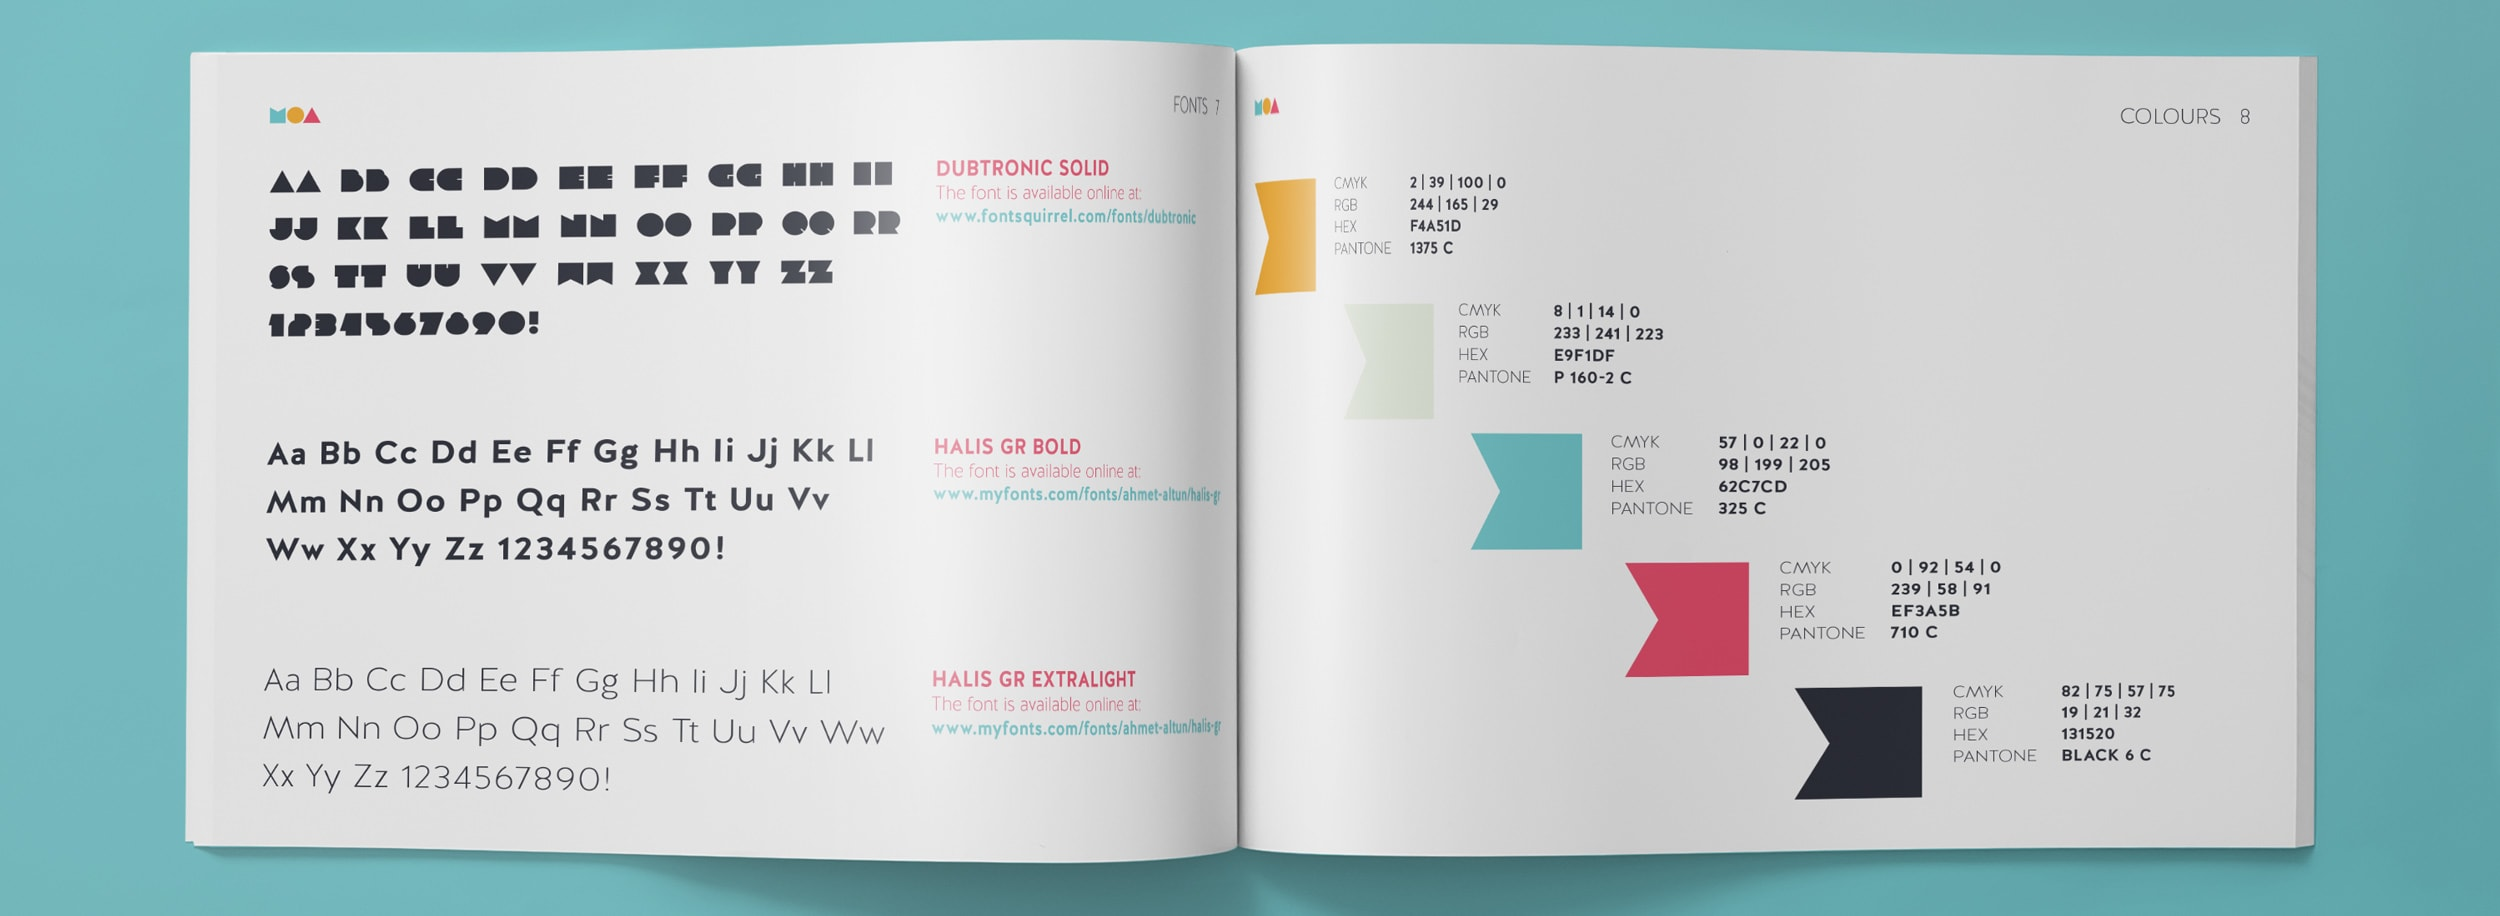 Moa Brand Guide: typography and the official bran colour palette © LET'S PANDA